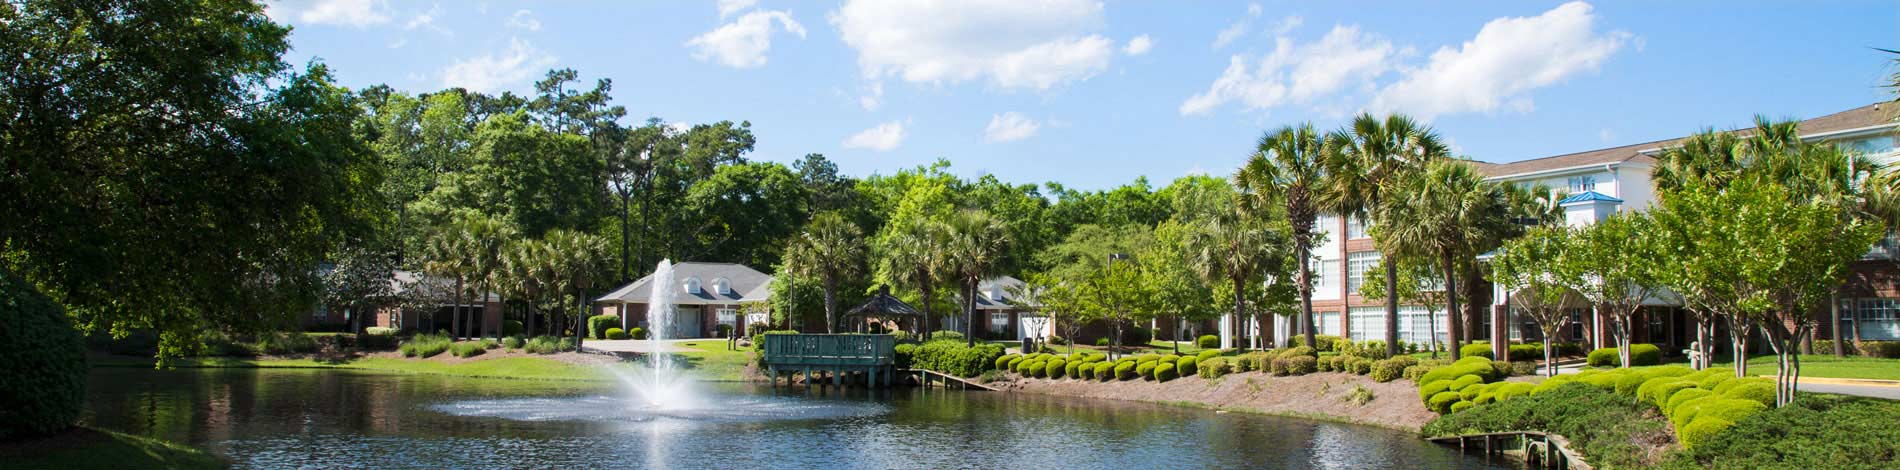 Lakes at Litchfield Independent Living Retirement